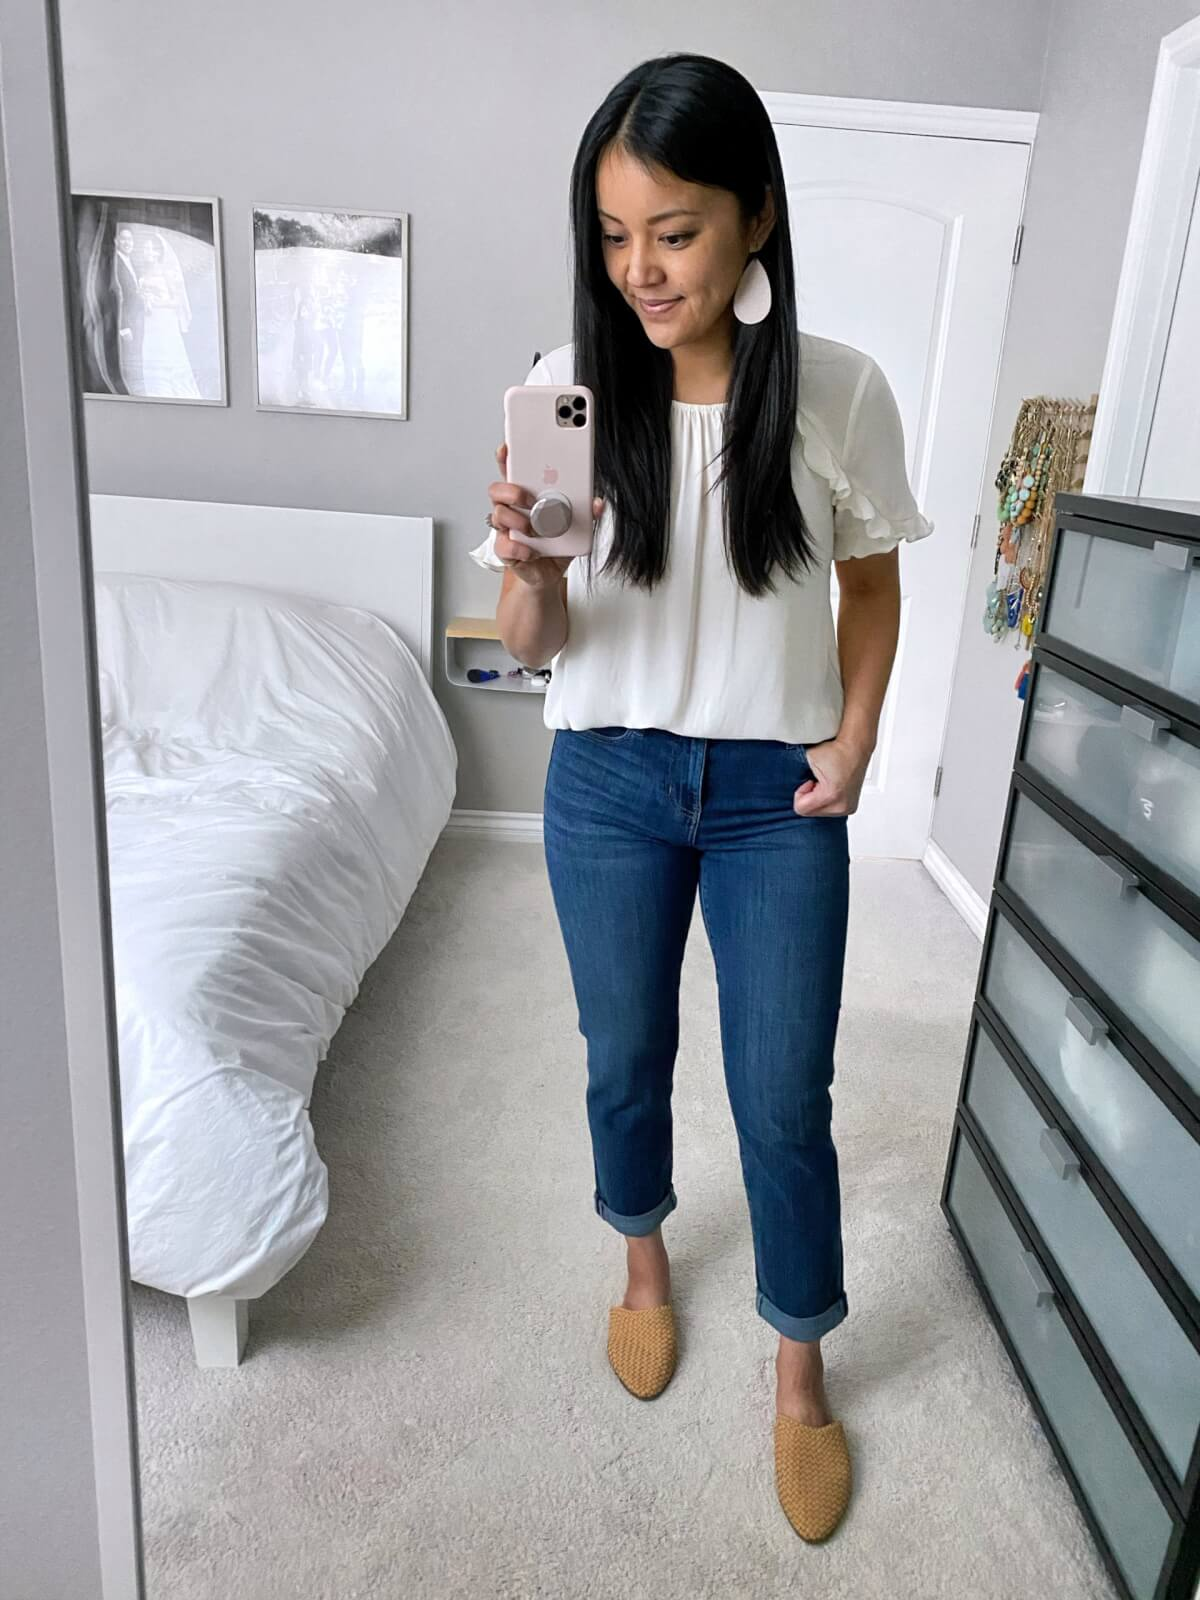 Classic Outfit: white top + cropped jeans + nude mules + white earrings